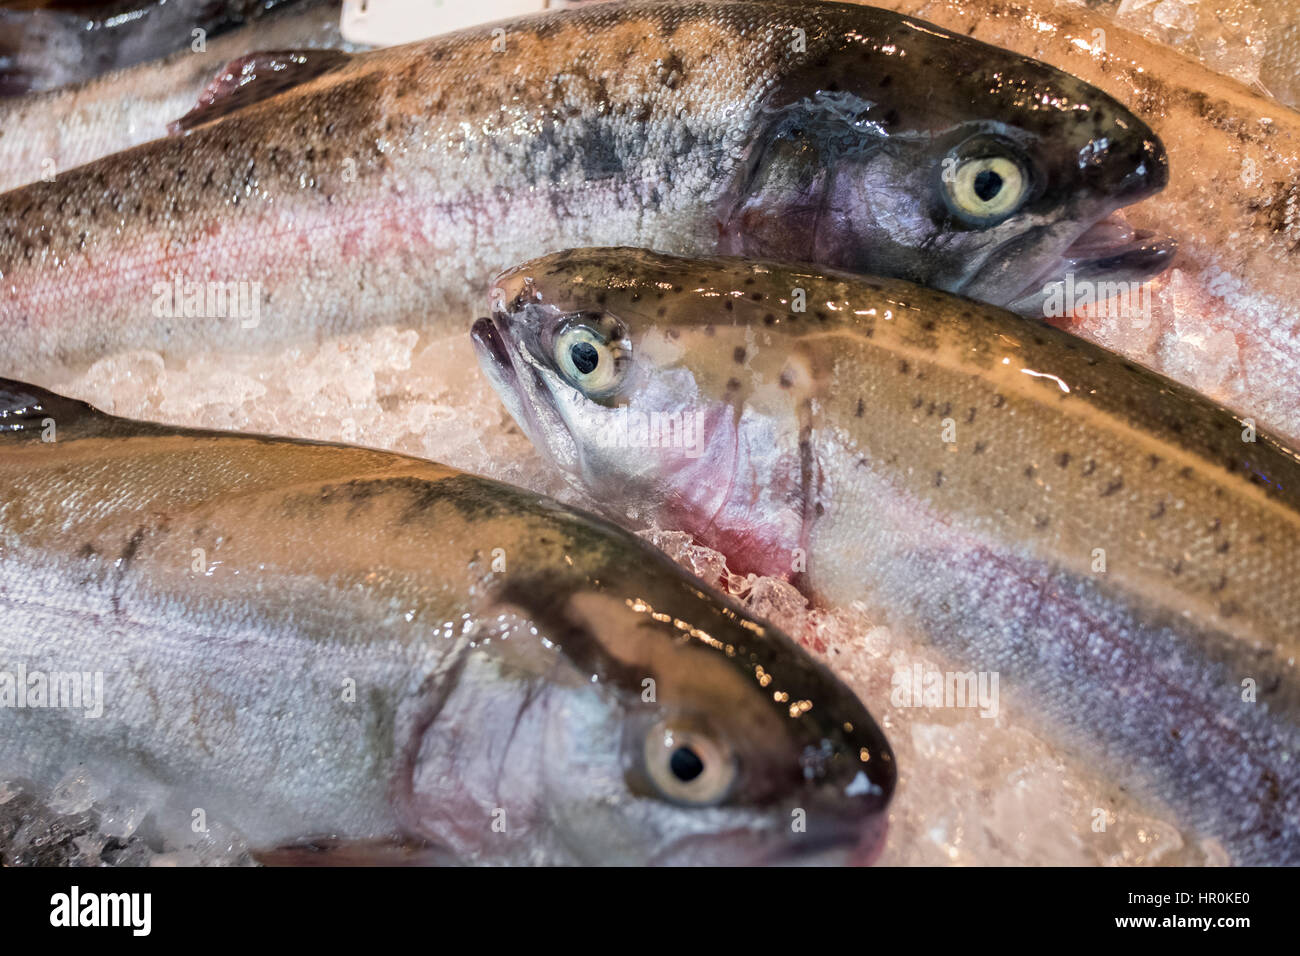 Fresh Fish. Trout on a market stall in a supermarket. A oily fish with healthy omega 3 oils Stock Photo